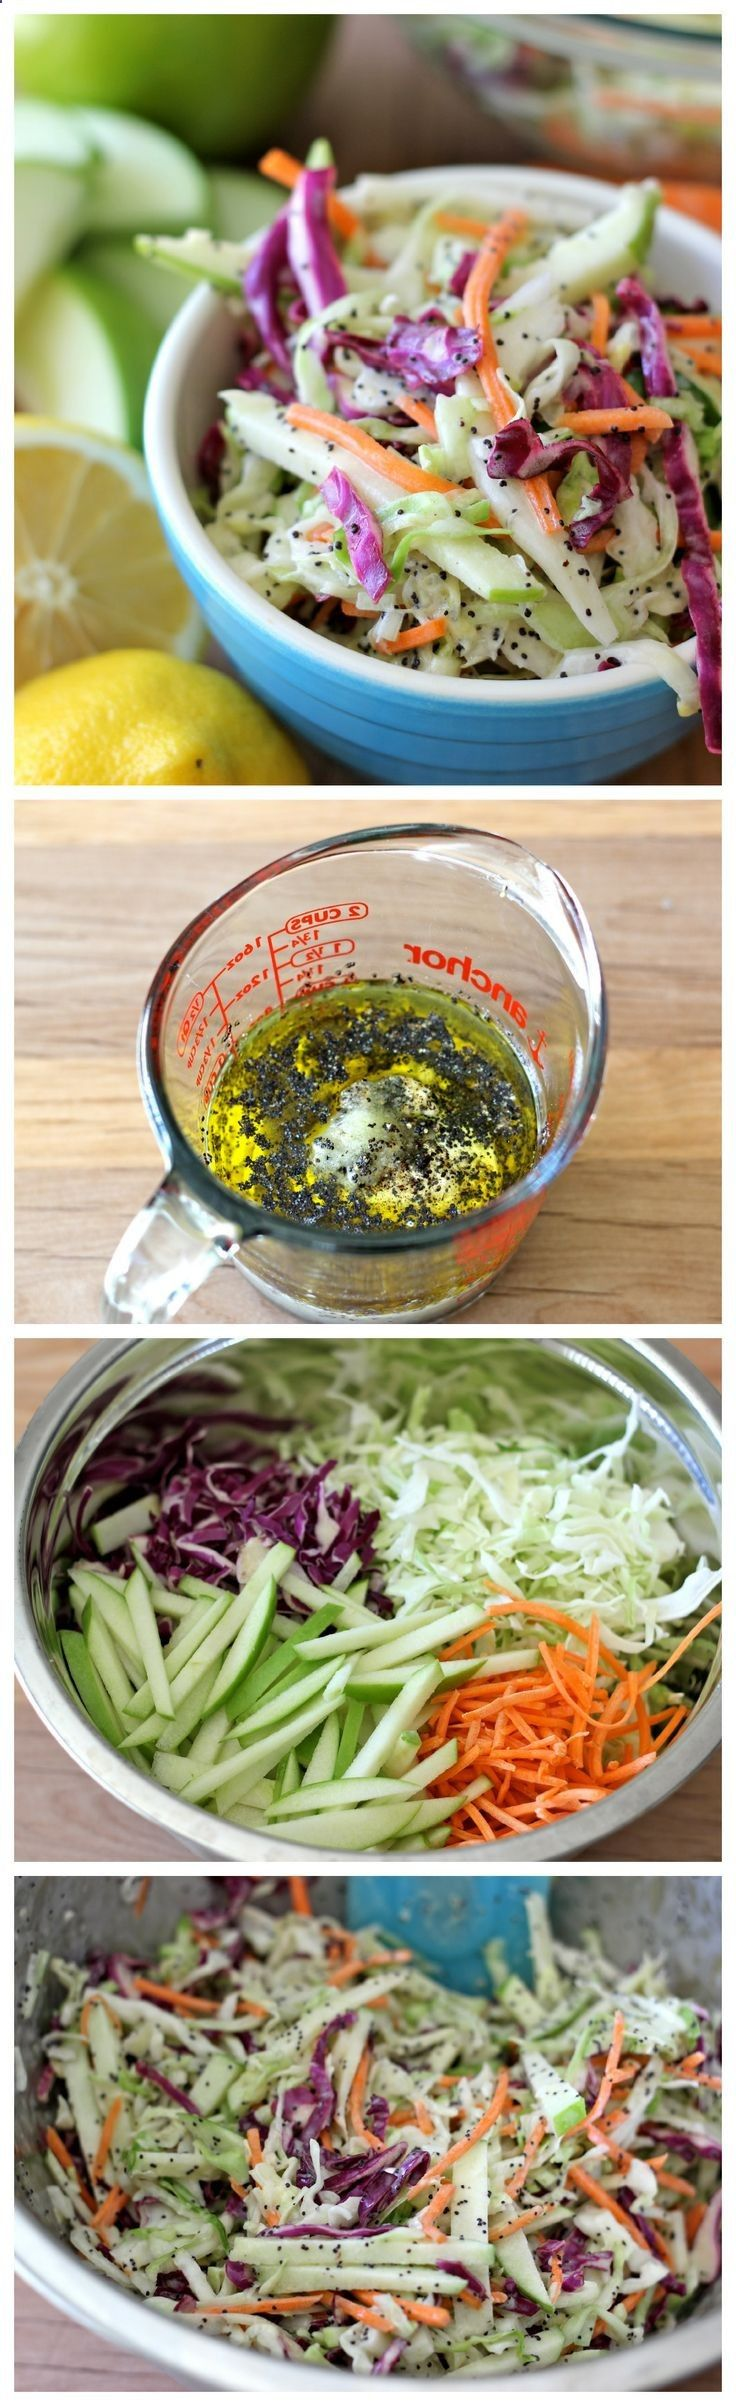 Apple and Poppy Seed Coleslaw Recipe ~ Wonderfully tangy and refreshing, and the perfect side dish to any meal!